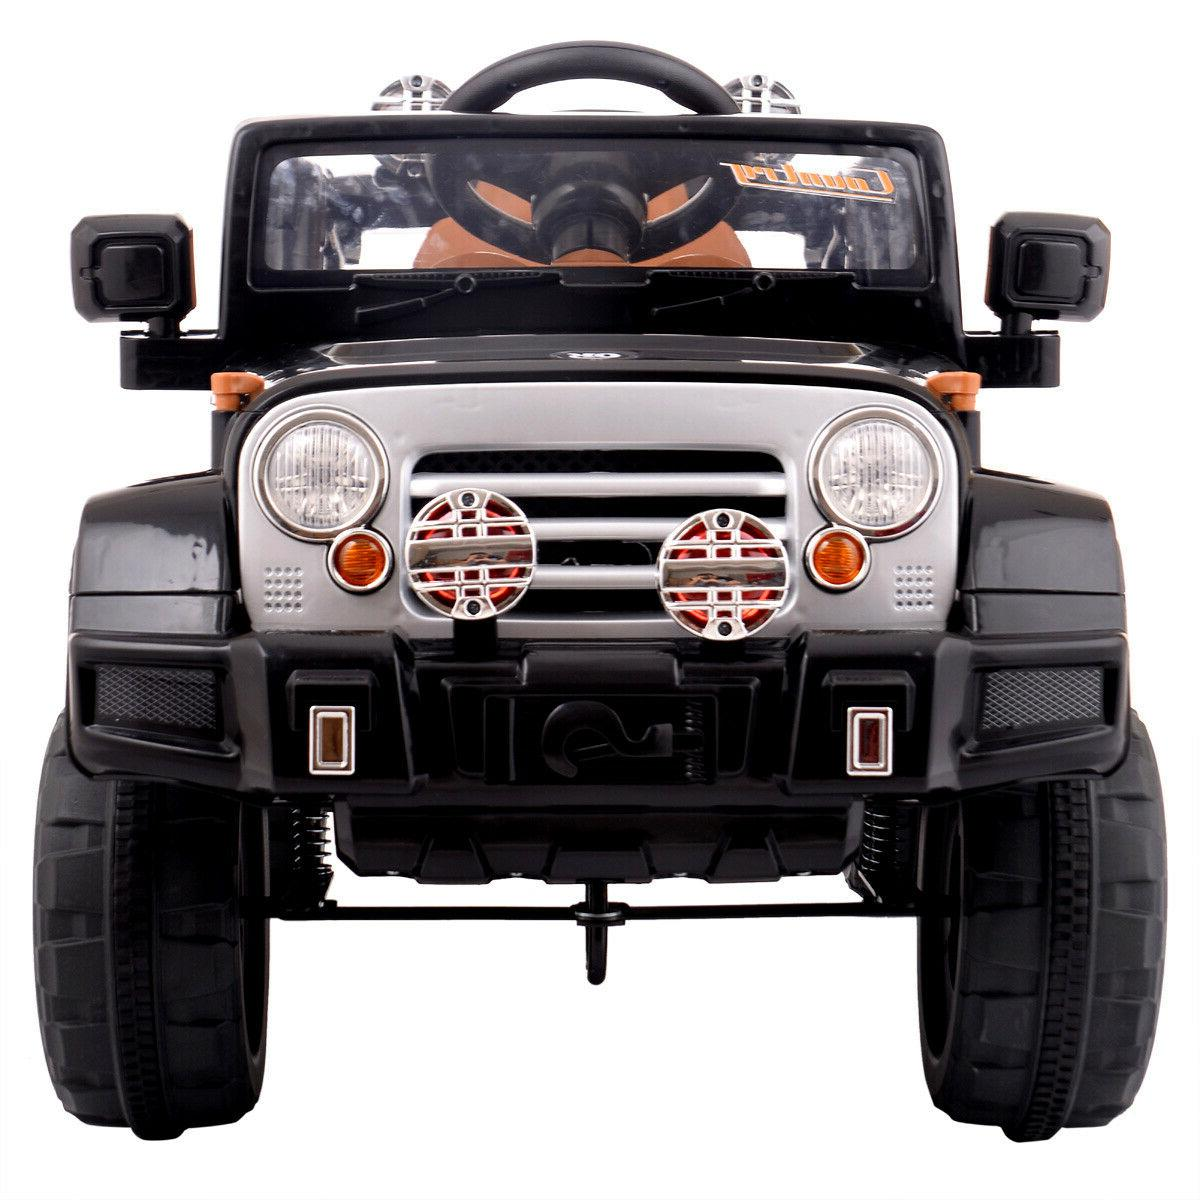 Ride Jeep Style Truck 12V Battery Powered Toy Vehicle 2 Remote